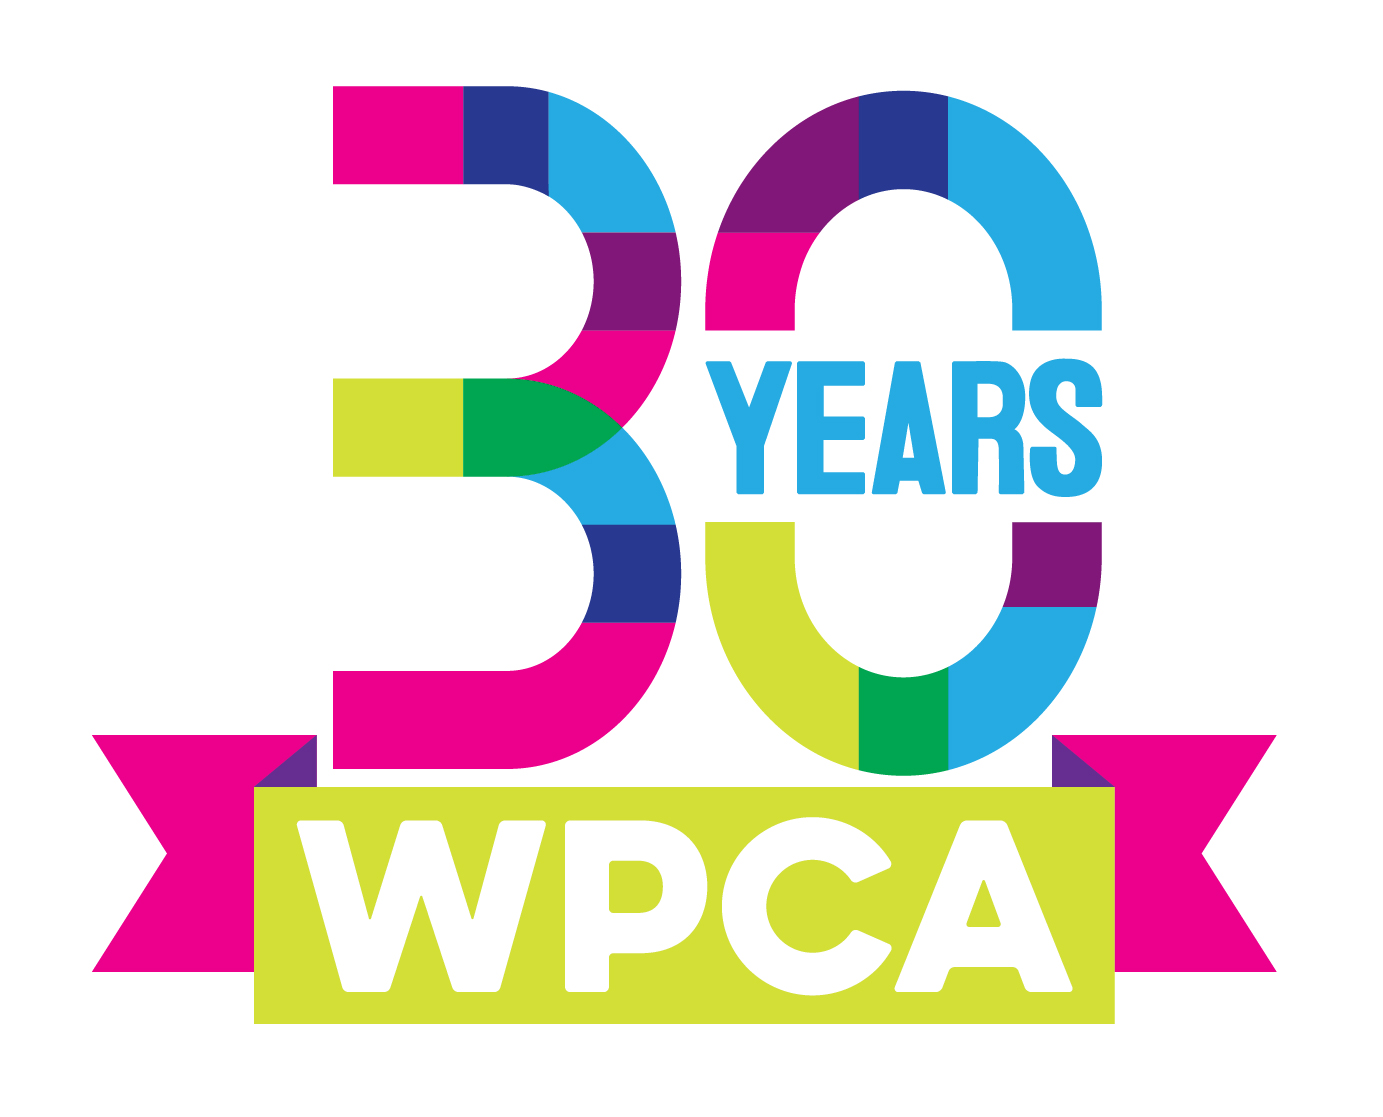 Walker's Point Center for the Arts 30th anniversary logo